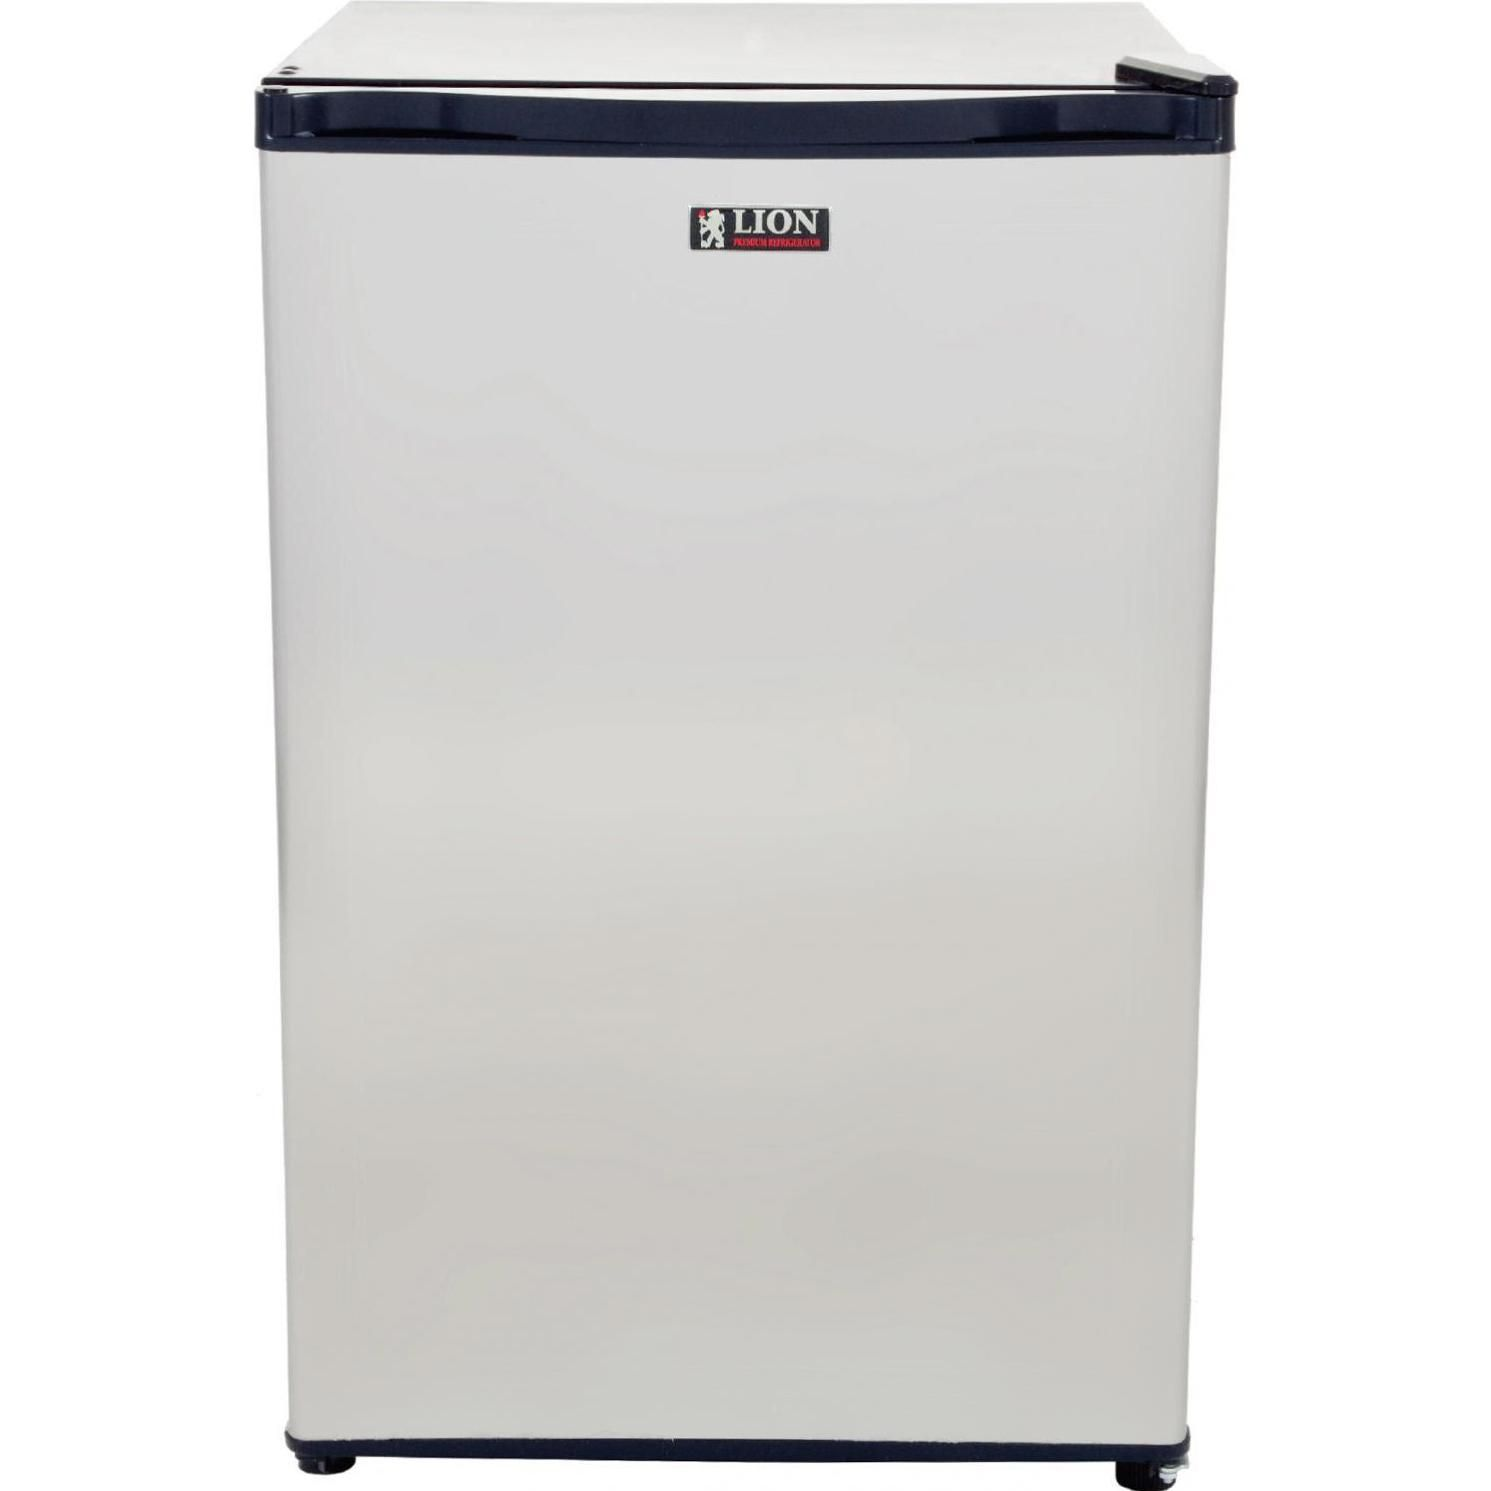 Lion 20 Inch 4 5 Cu Ft Compact Refrigerator With Recessed Handle Compact Refrigerator Stainless Steel Doors Outdoor Kitchen Design